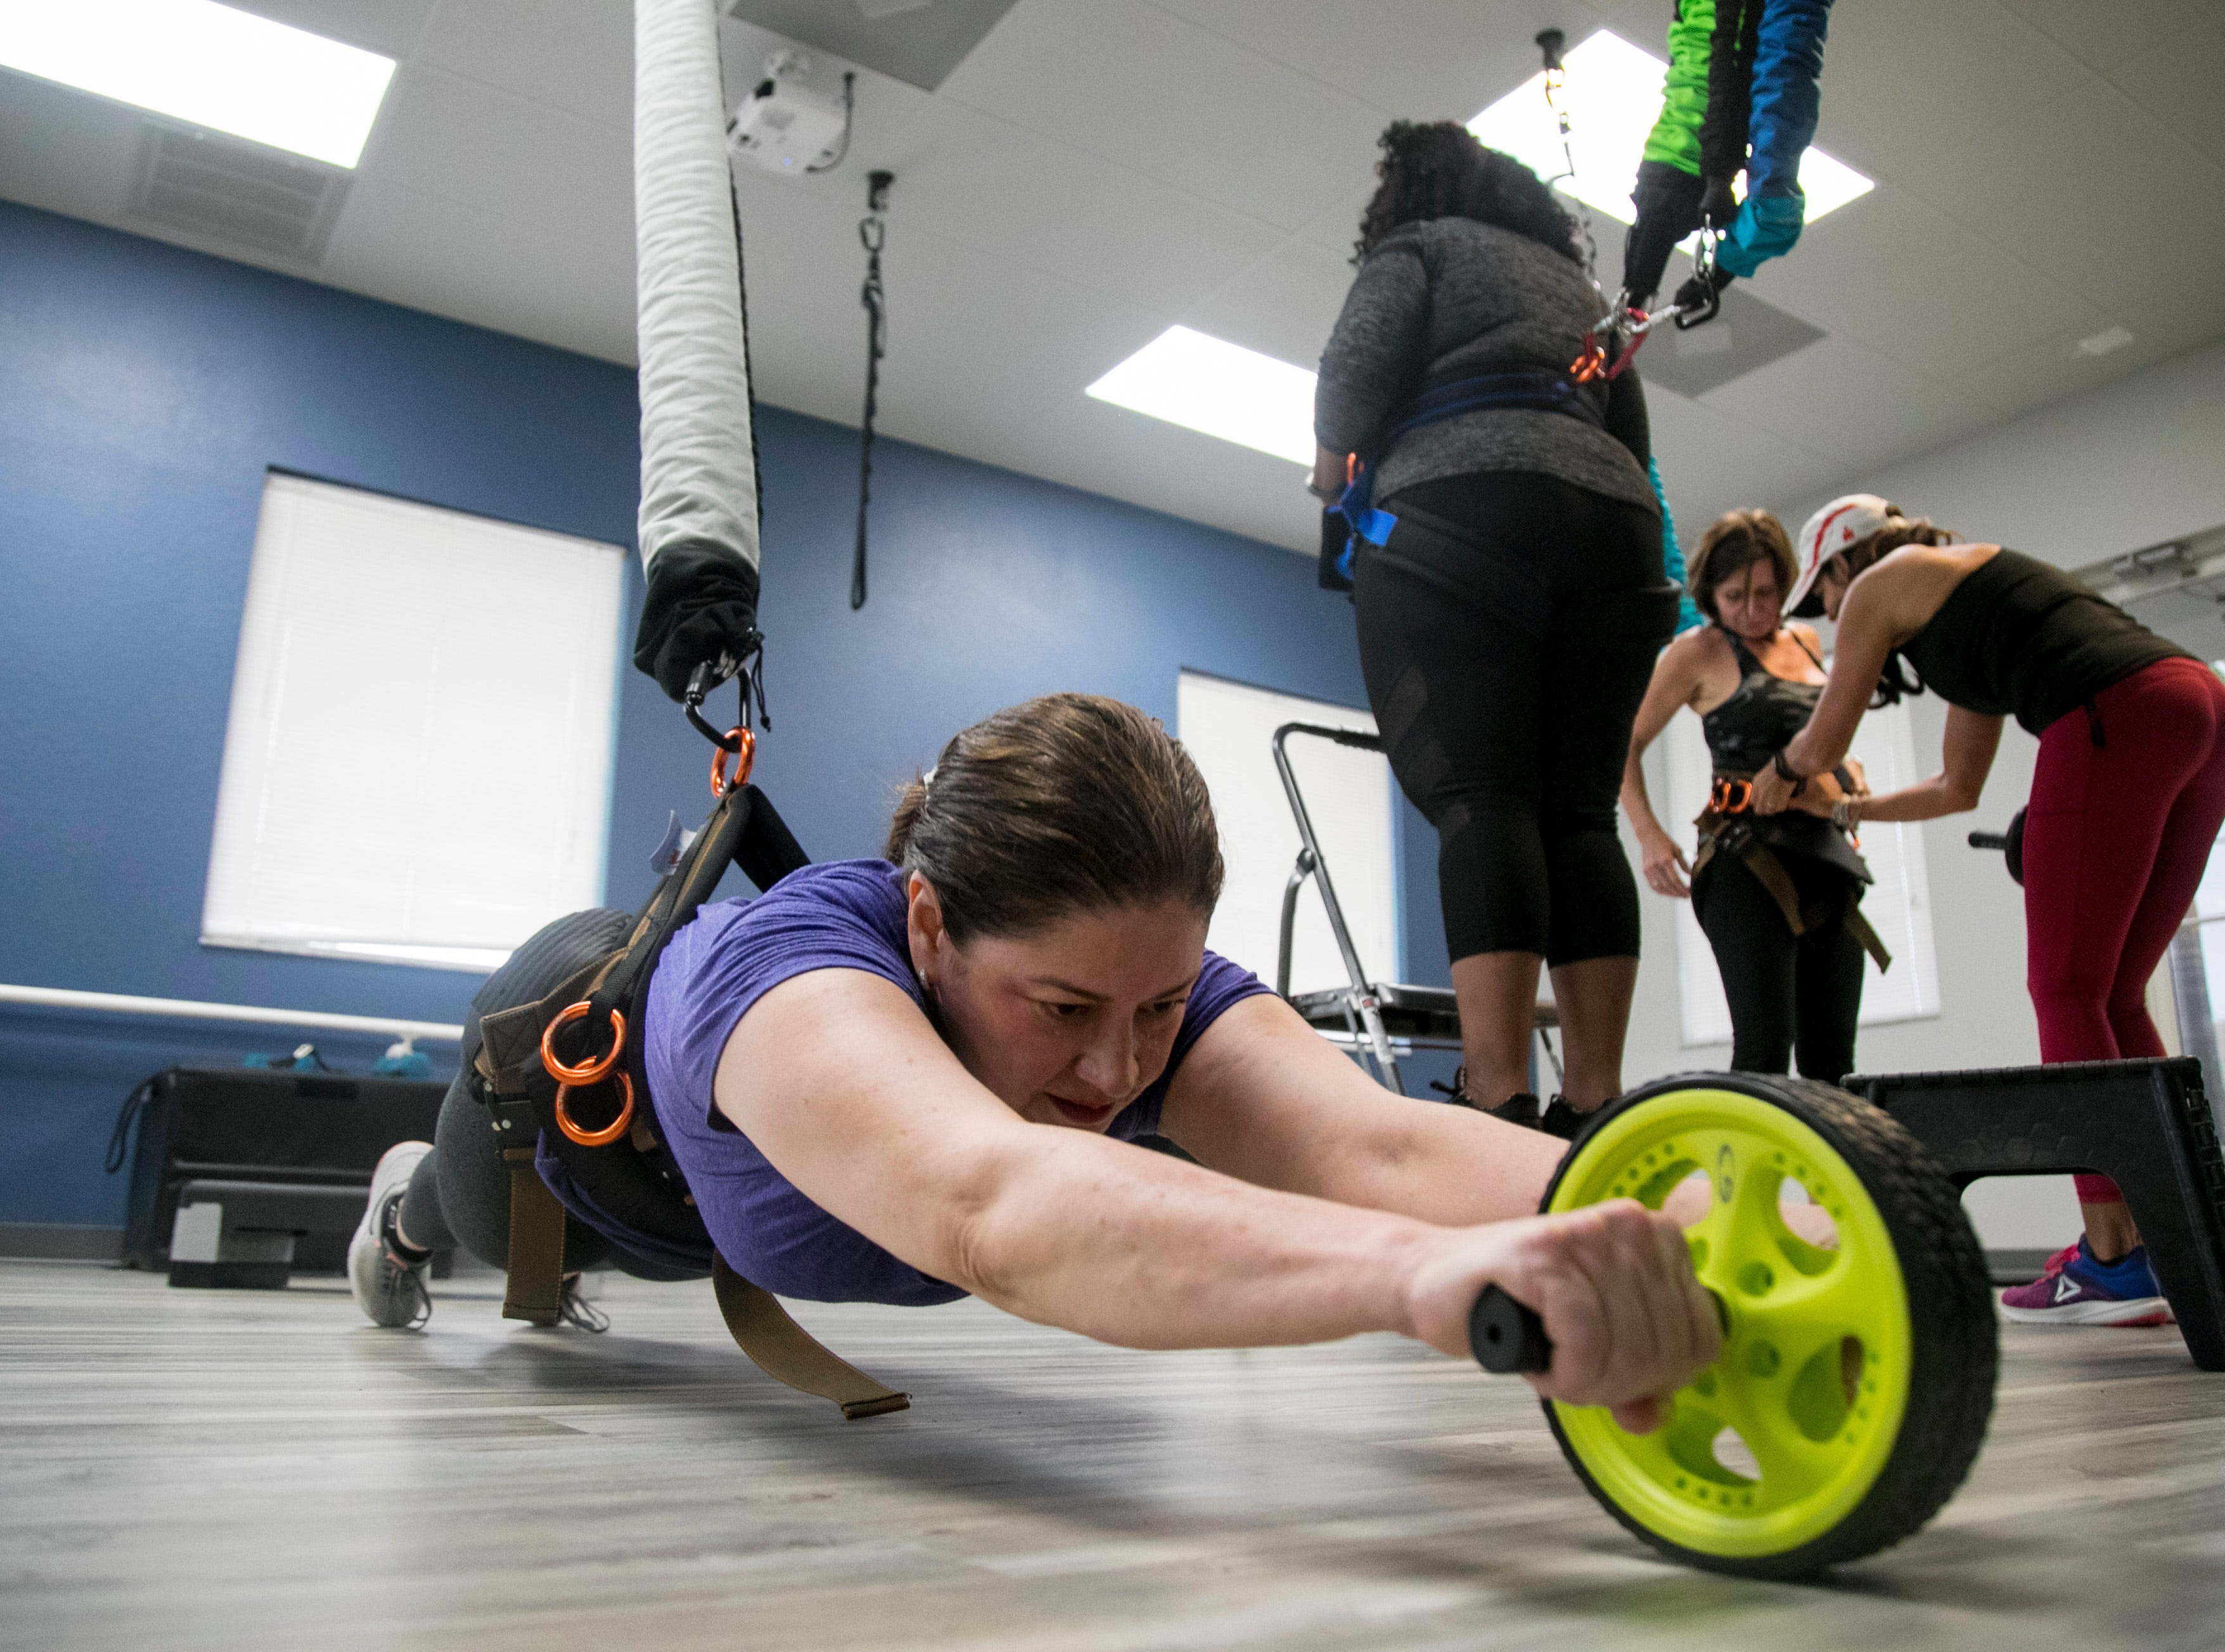 Ana Roman tries out the Astro-Durance bungee workout at P2 Personal Training in Cape Coral on Wednesday, November 7, 2018.